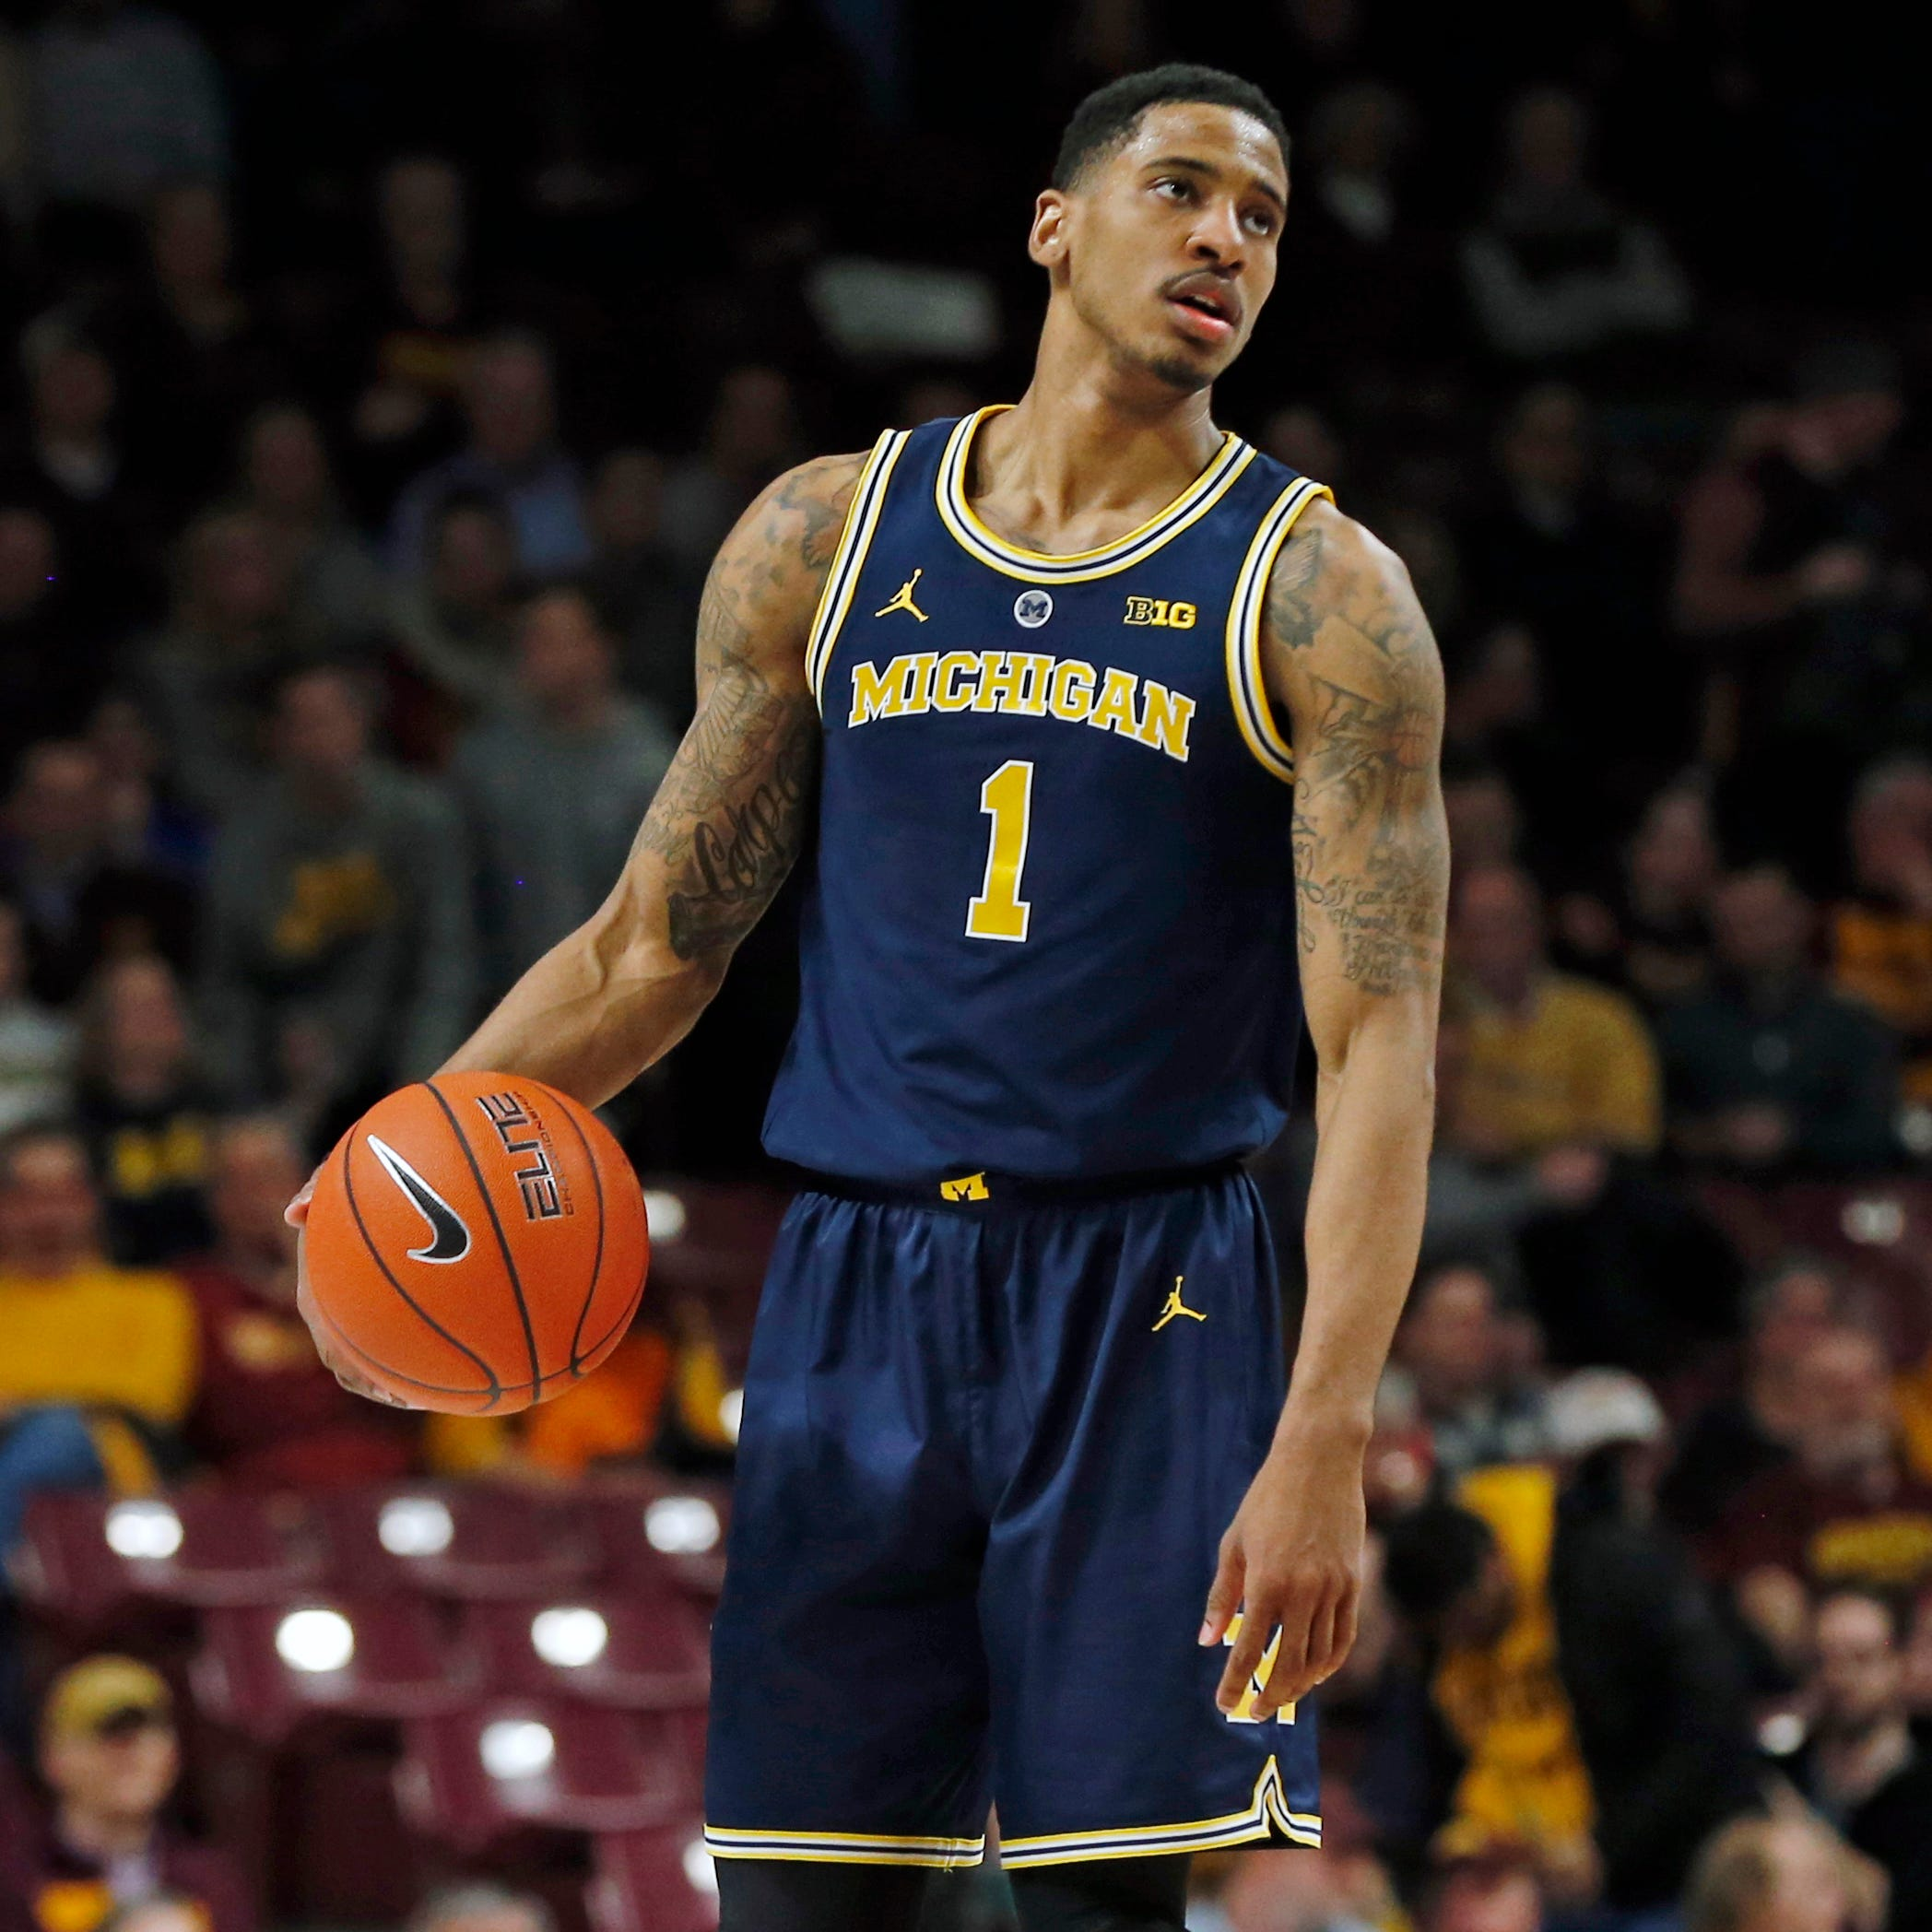 Michigan's Charles Matthews 'feeling better,anxious to play' but not 100 percent